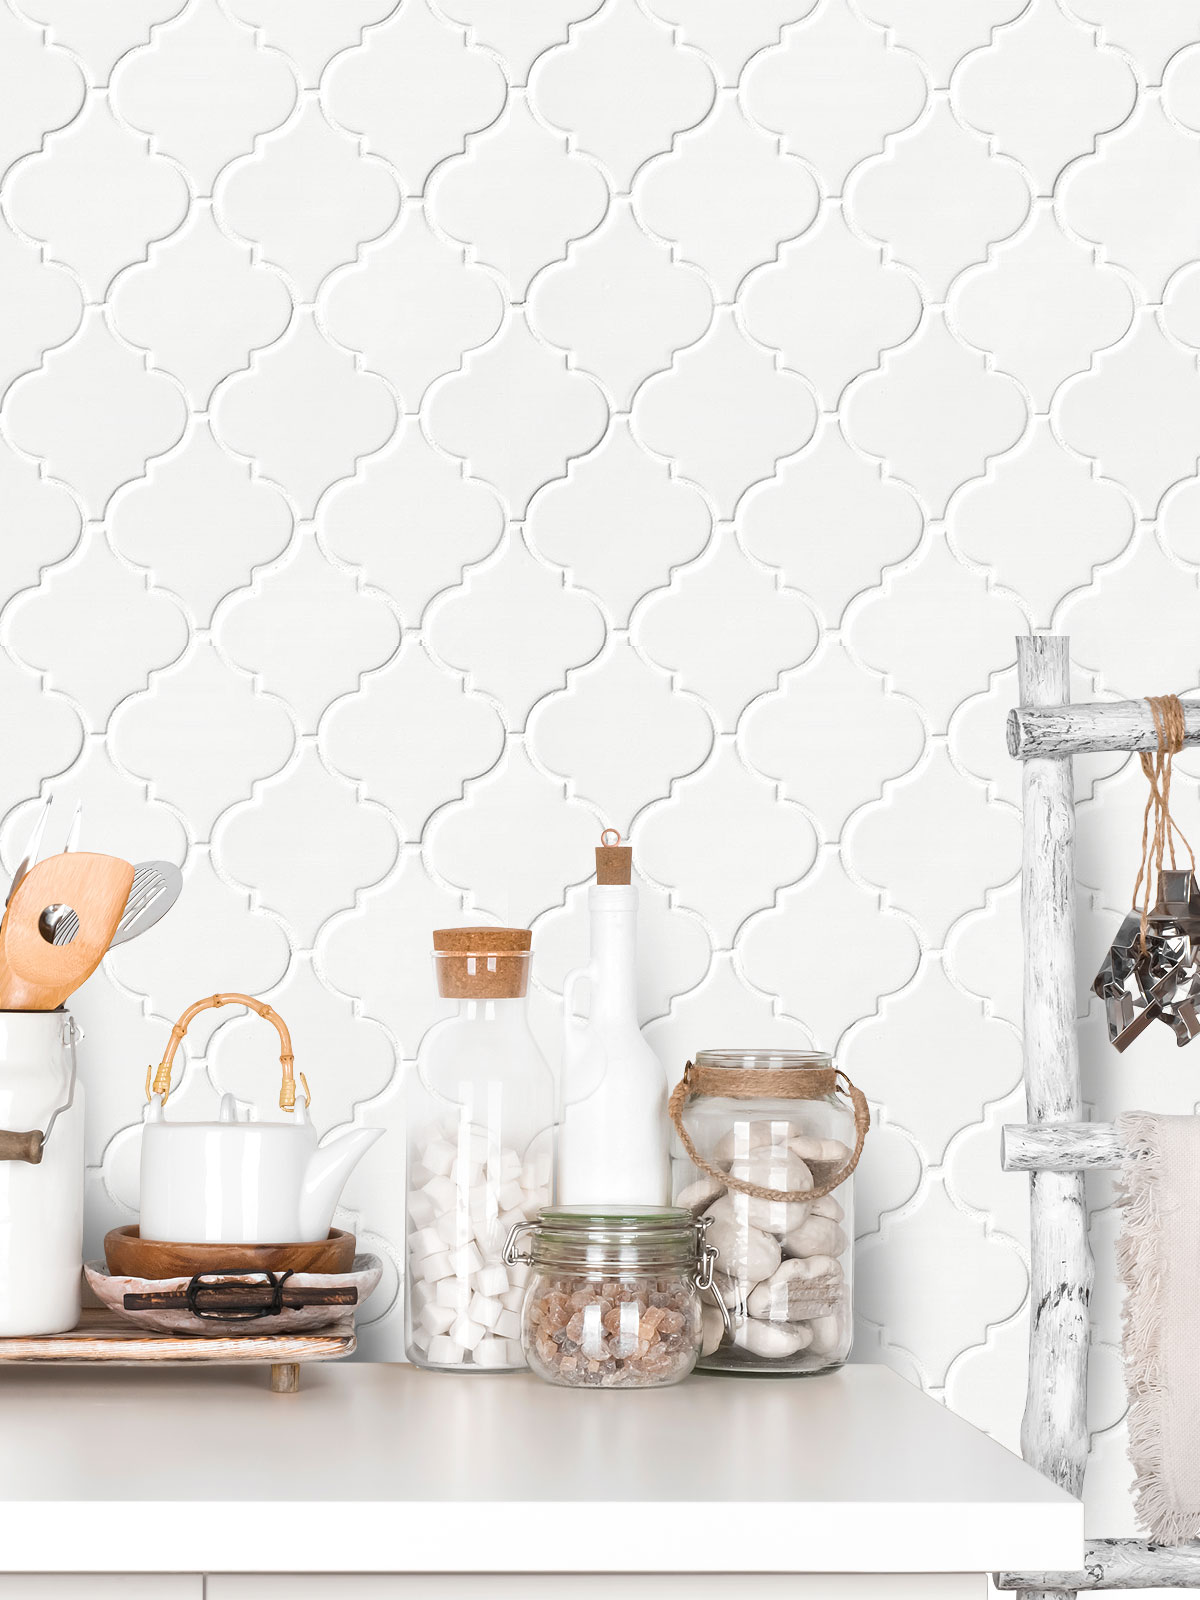 White Ceramic Arabesque Wall Tile BA311526 from backsplash.com